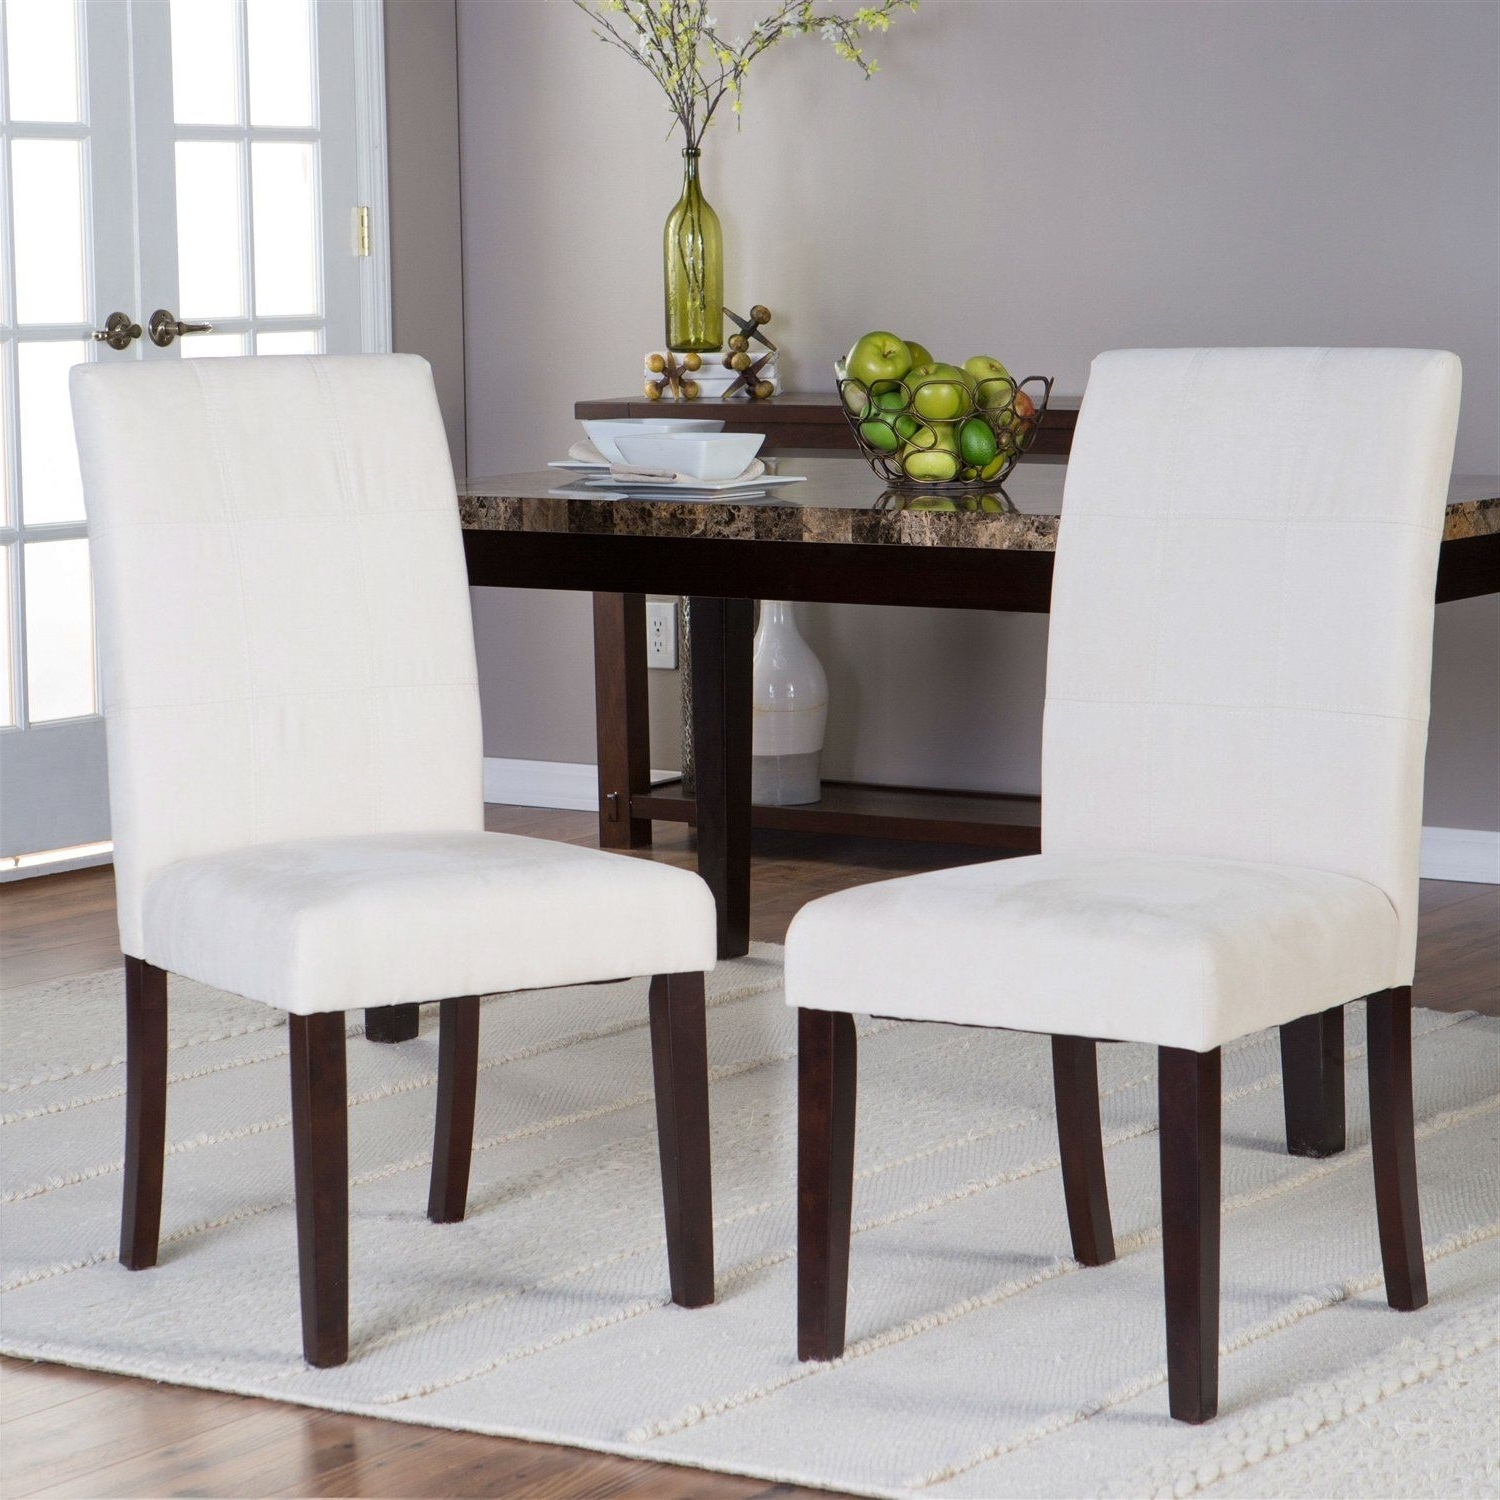 Palazzo 3 Piece Dining Table Sets Regarding 2017 Set Of 2 Light Beige Padded Microfiber Dining Chairs (View 15 of 25)